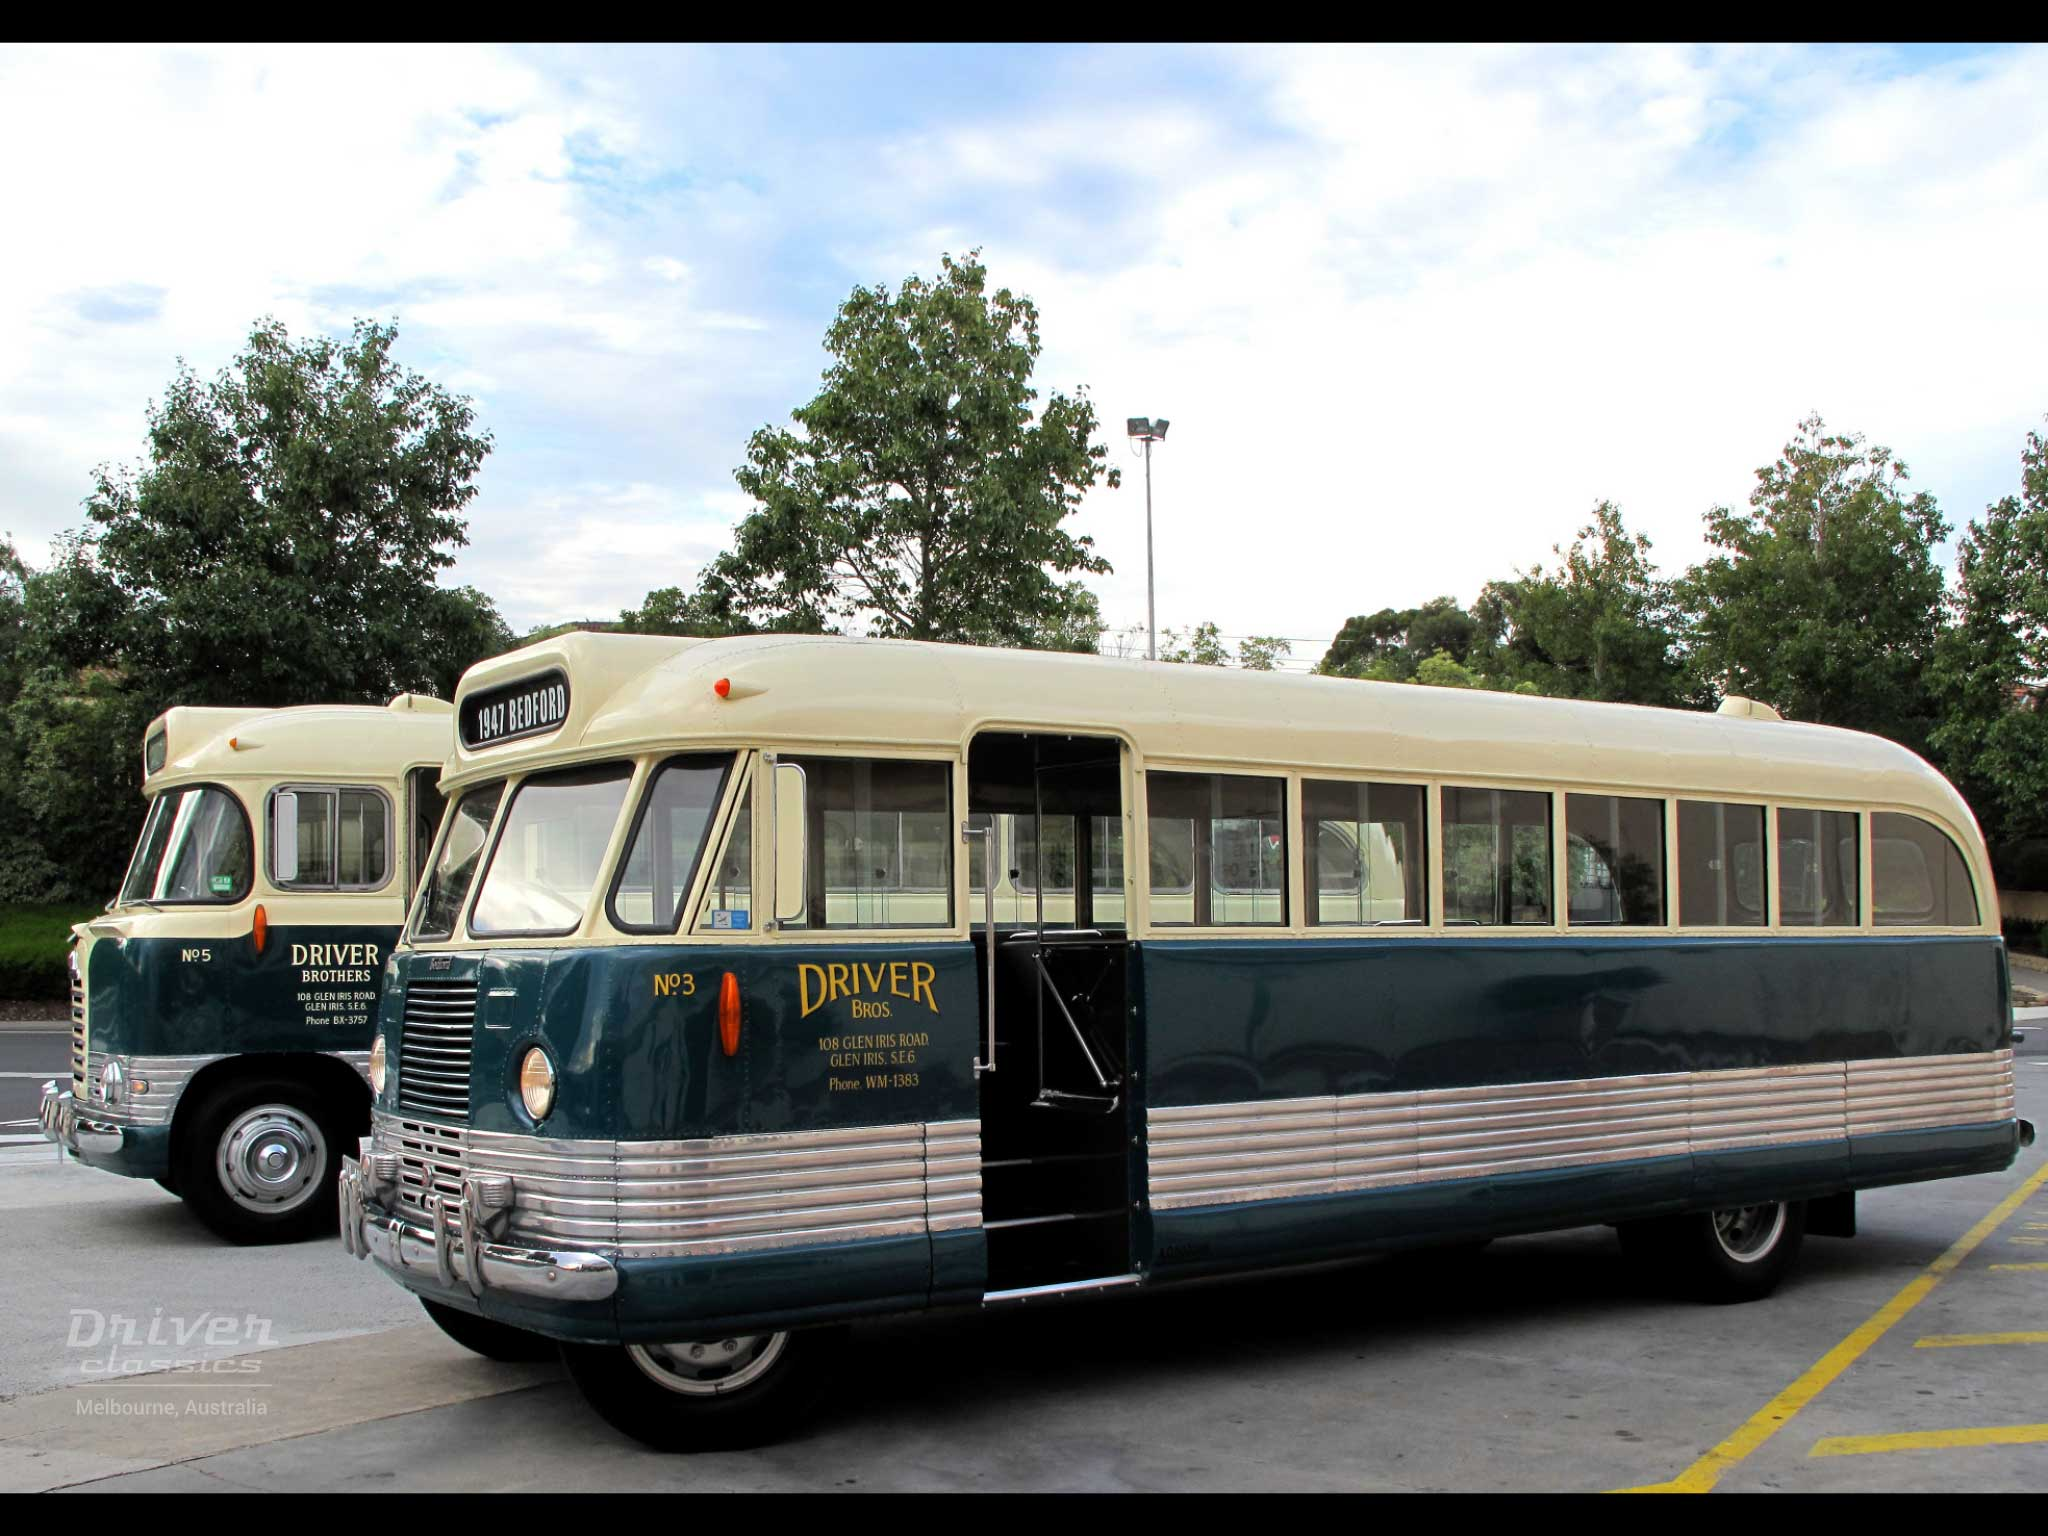 1947 Bedford OB and 1959 Bedford SB3 buses